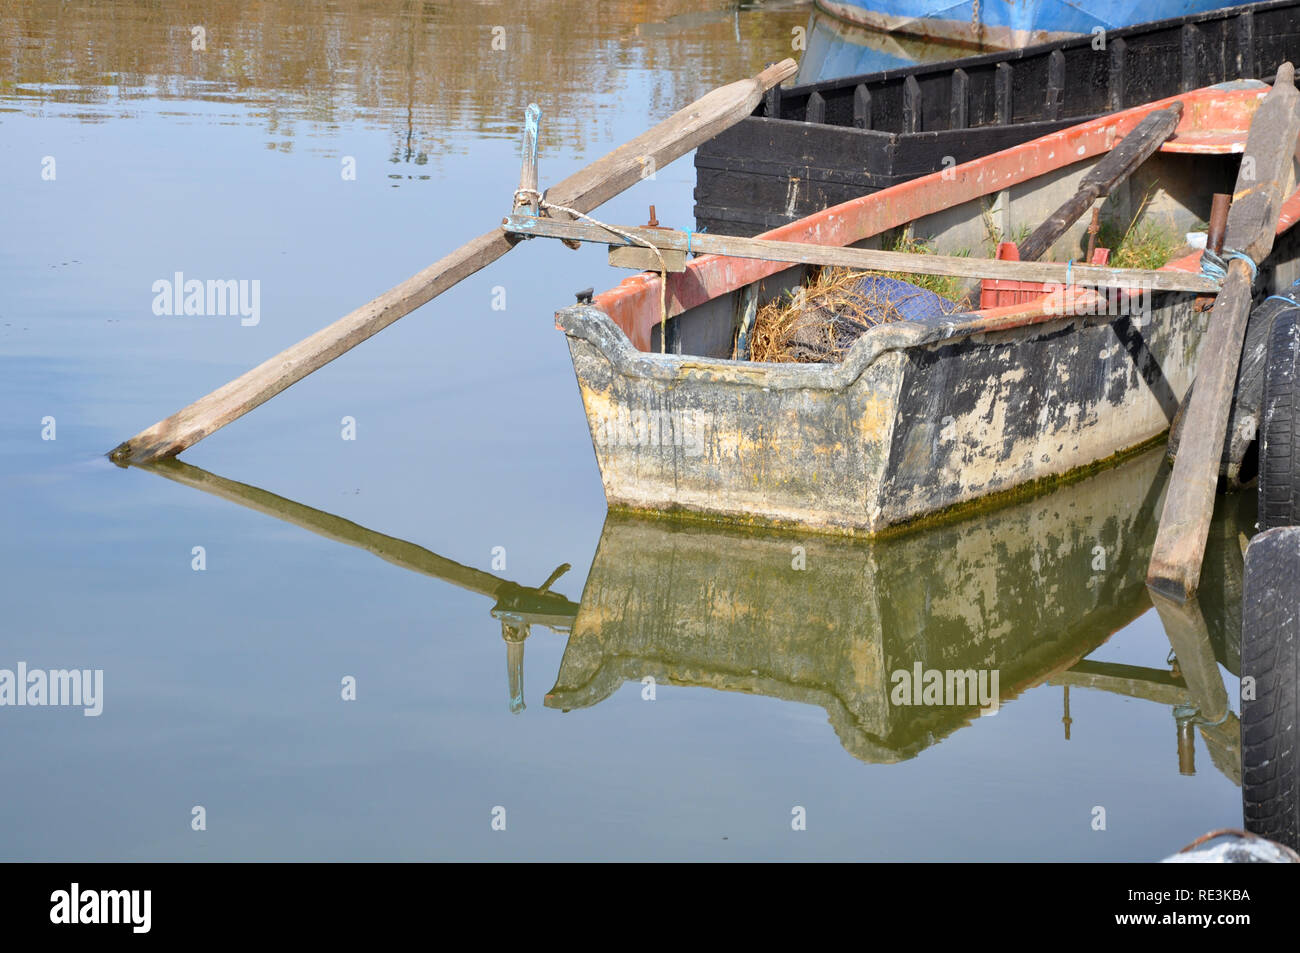 reflections of boats on Kerkini lake - Greece - Stock Image